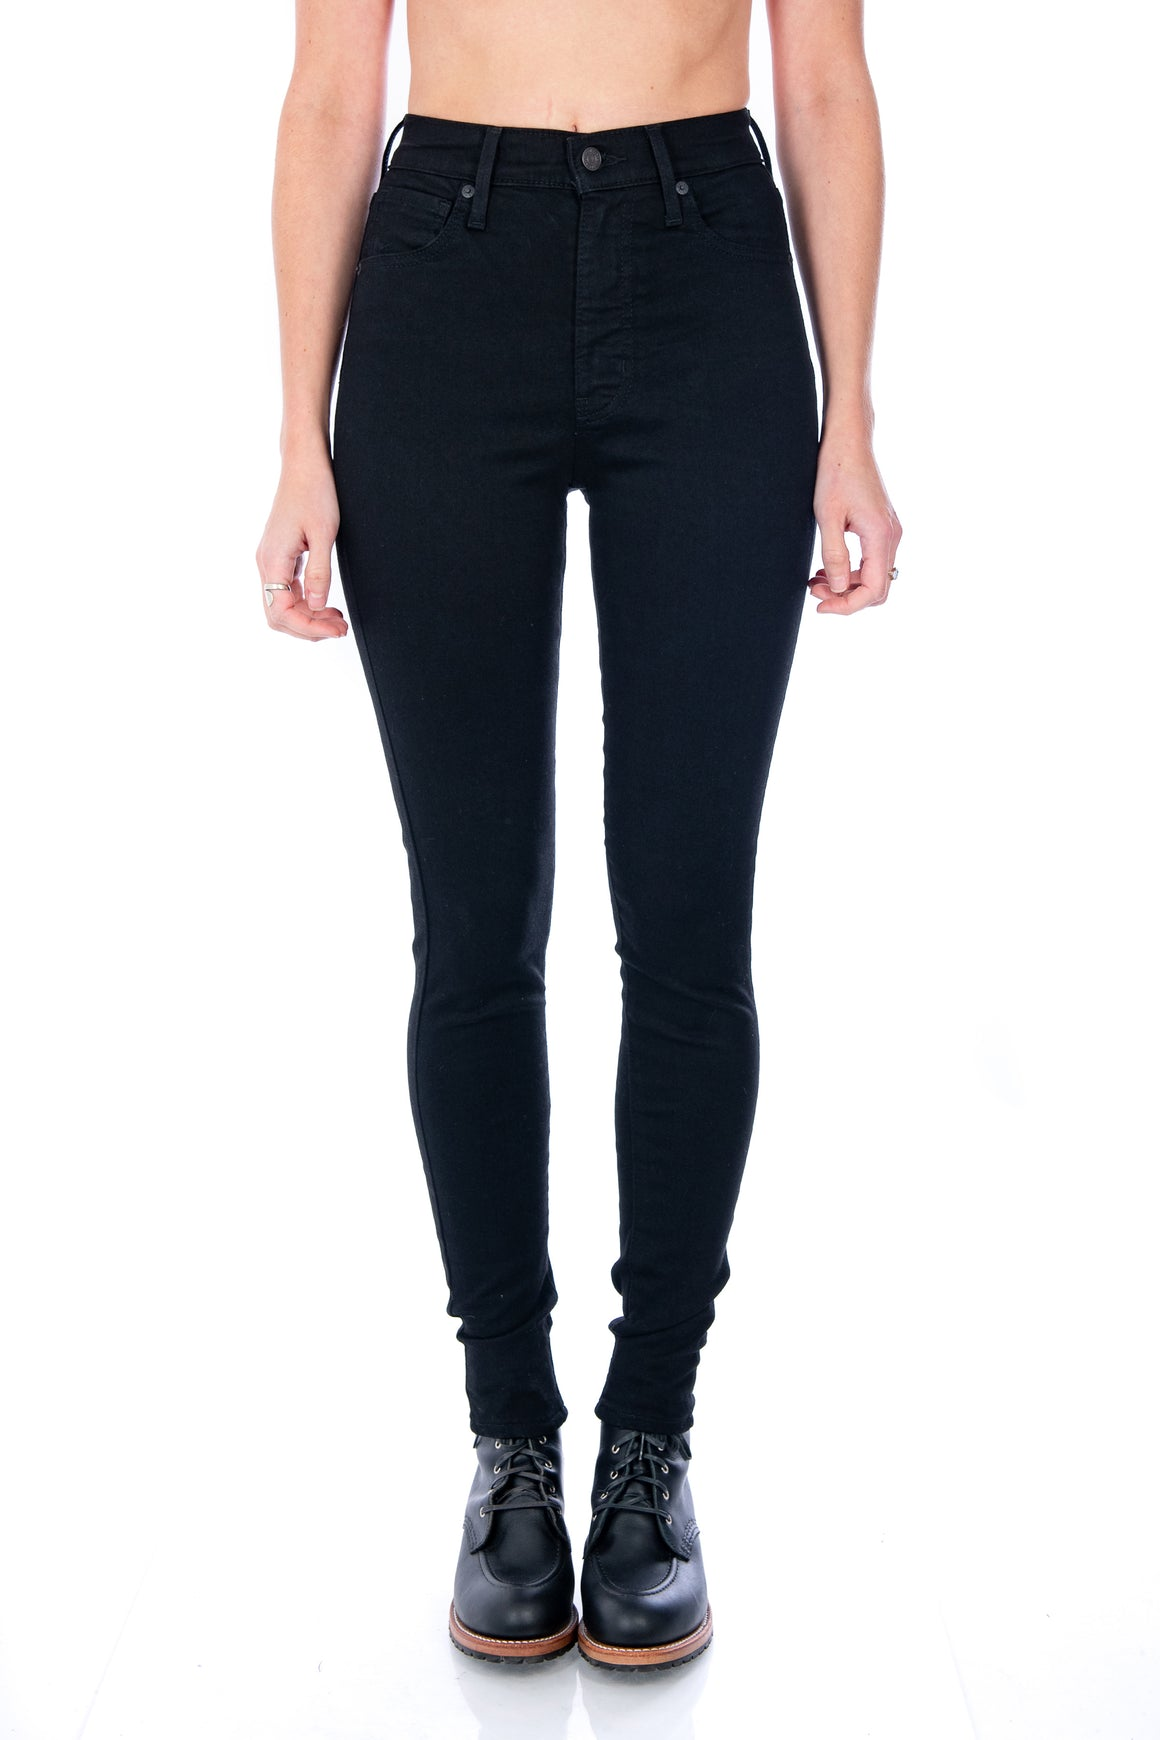 Mile High Super Skinny in Black Galaxy - Philistine